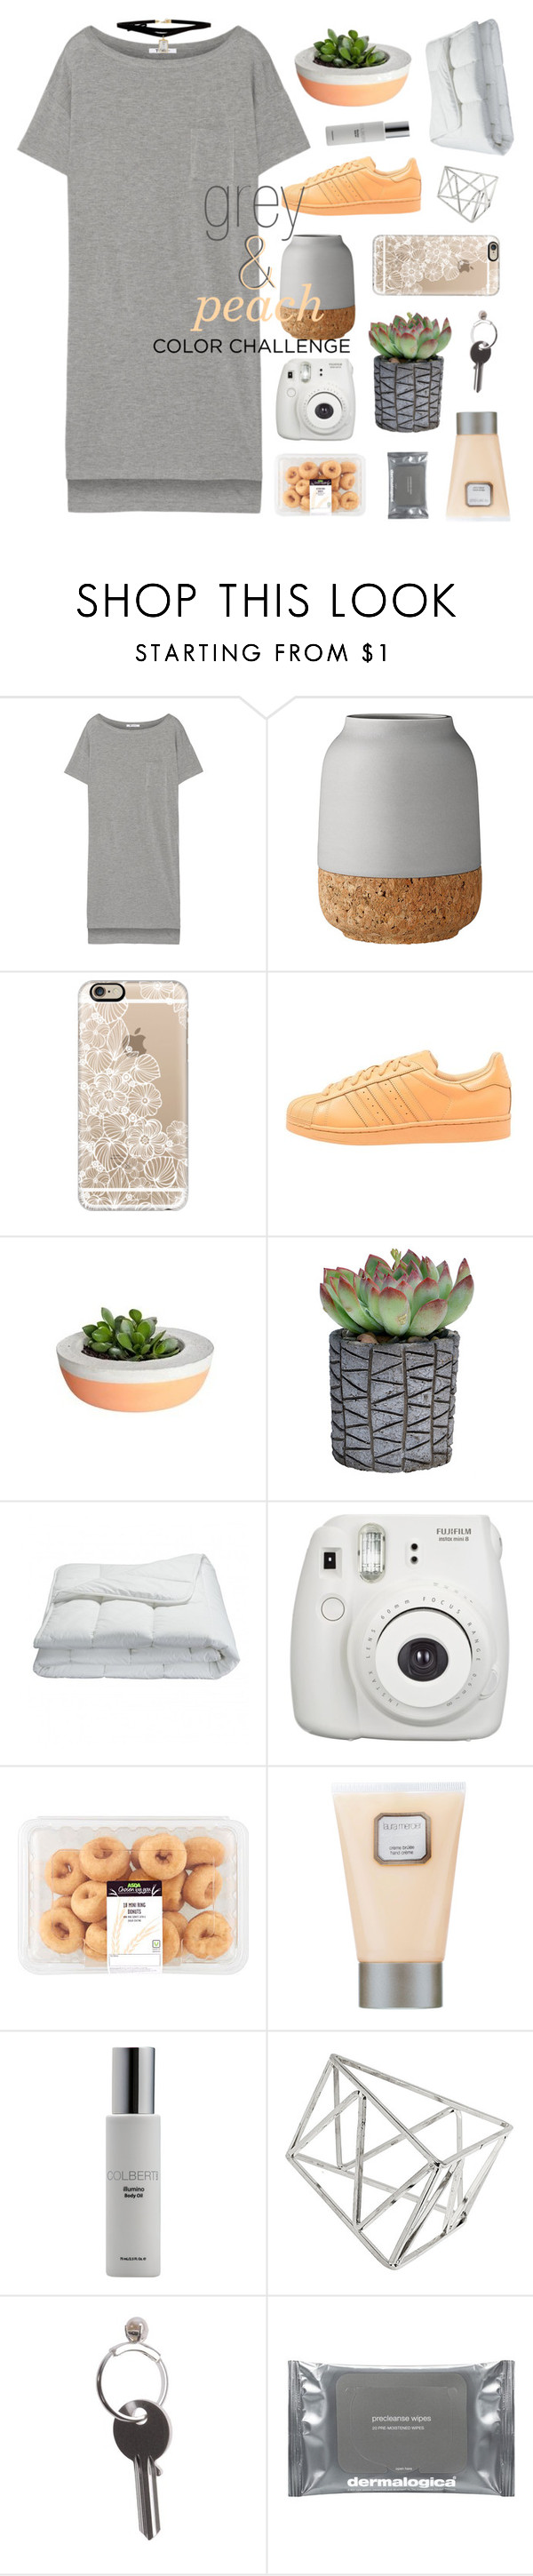 """""""❁ sunshine after the rain"""" by soundlxss ❤ liked on Polyvore featuring T By Alexander Wang, Dot & Bo, Casetify, adidas Originals, Frette, Fujifilm, Laura Mercier, Colbert MD, Topshop and Maison Margiela"""